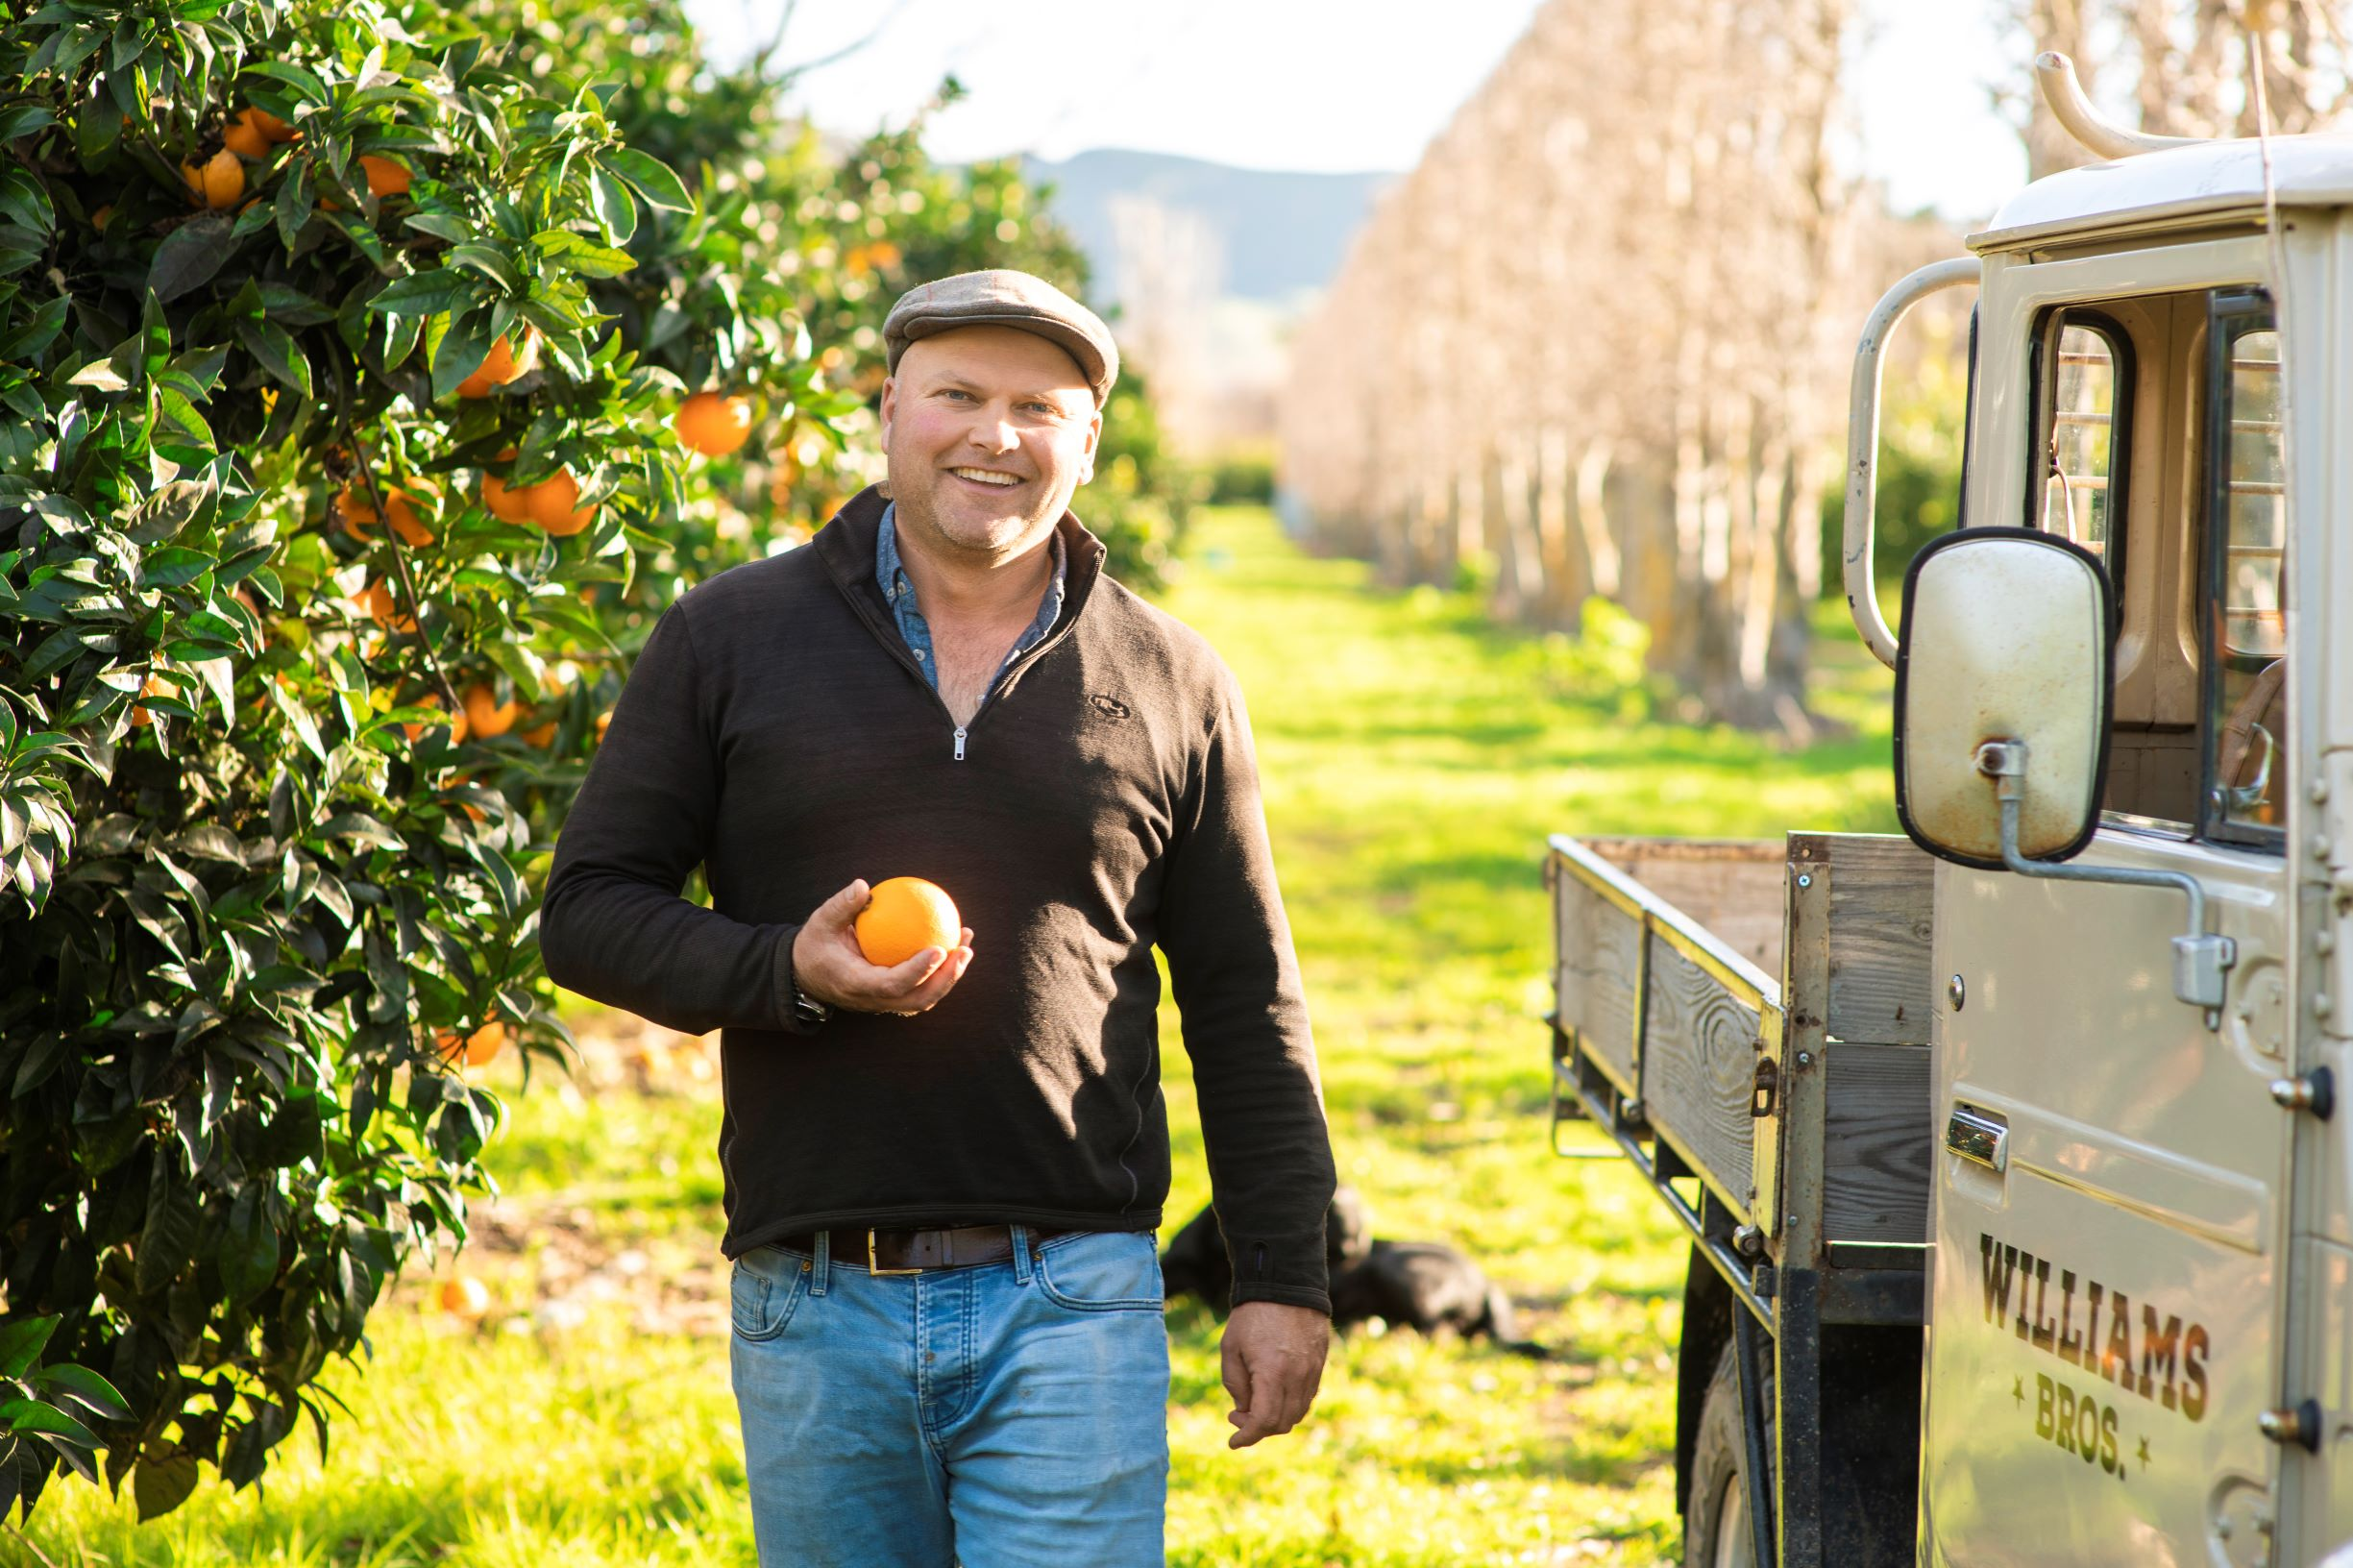 james williams - the passionate fruit grower